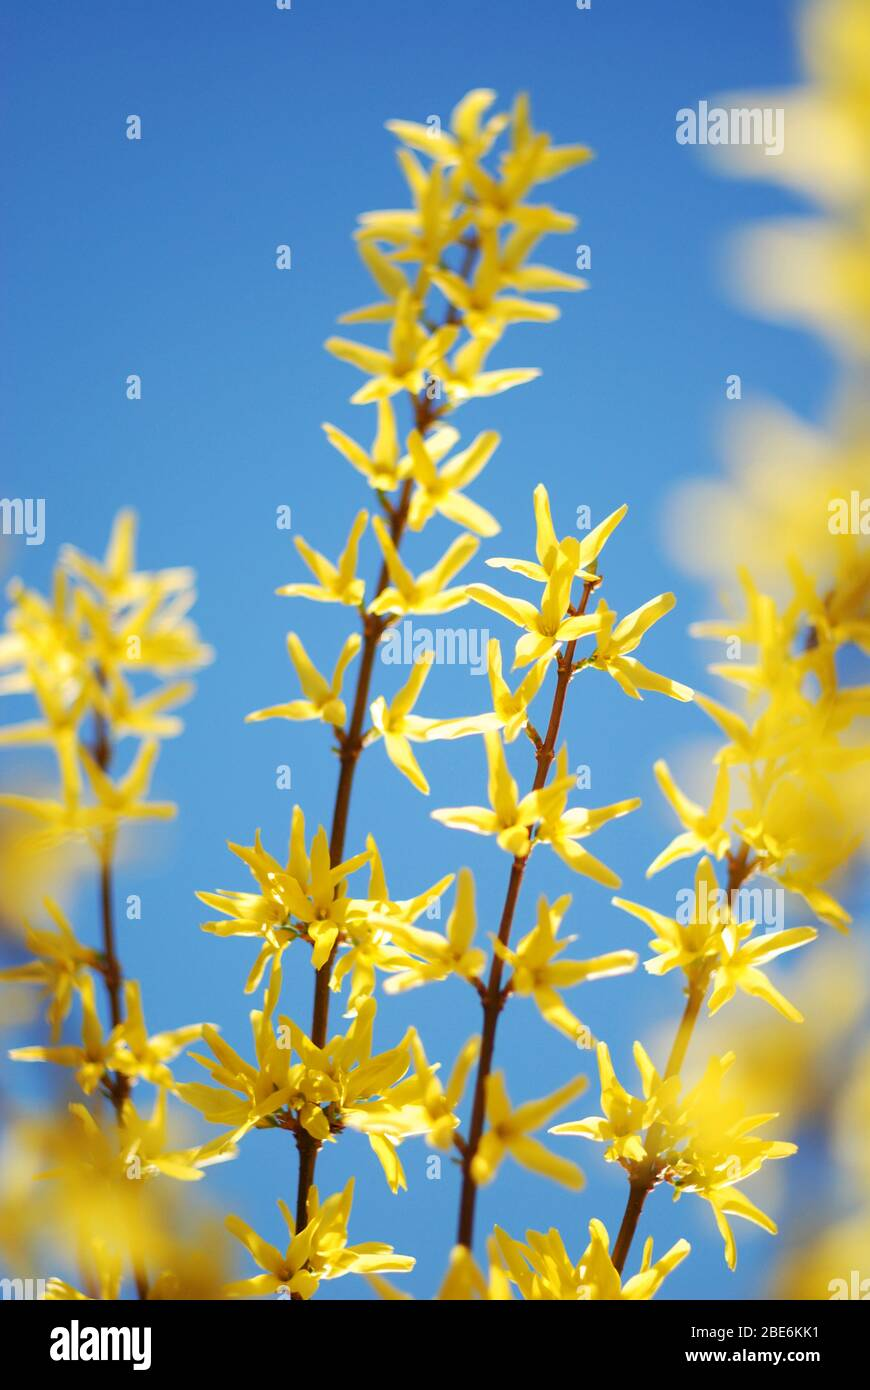 Forsythia Bush Yellow Blooming In Spring Time Stock Photo